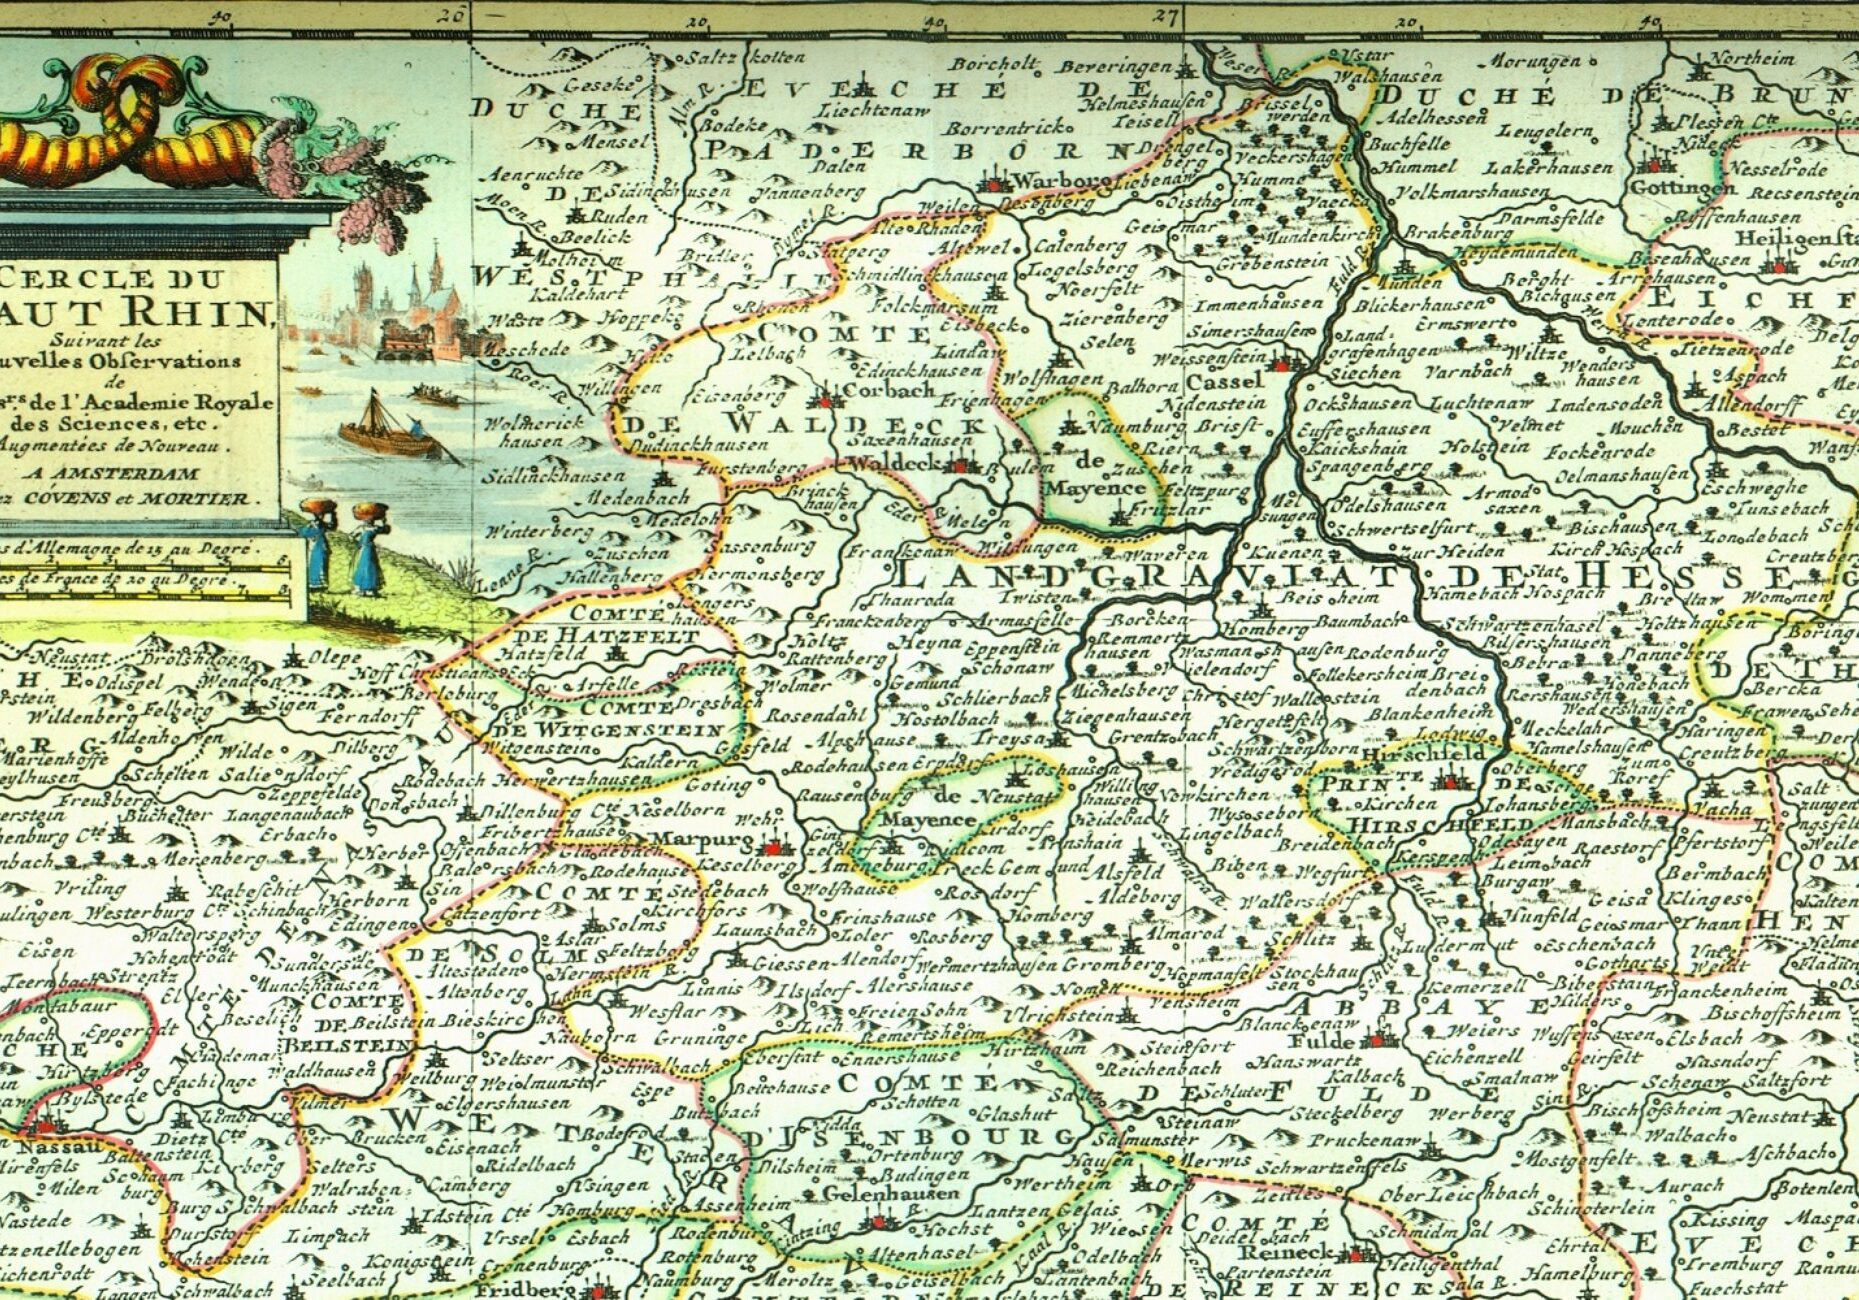 cropped-Hessen-Kassel-map.jpg